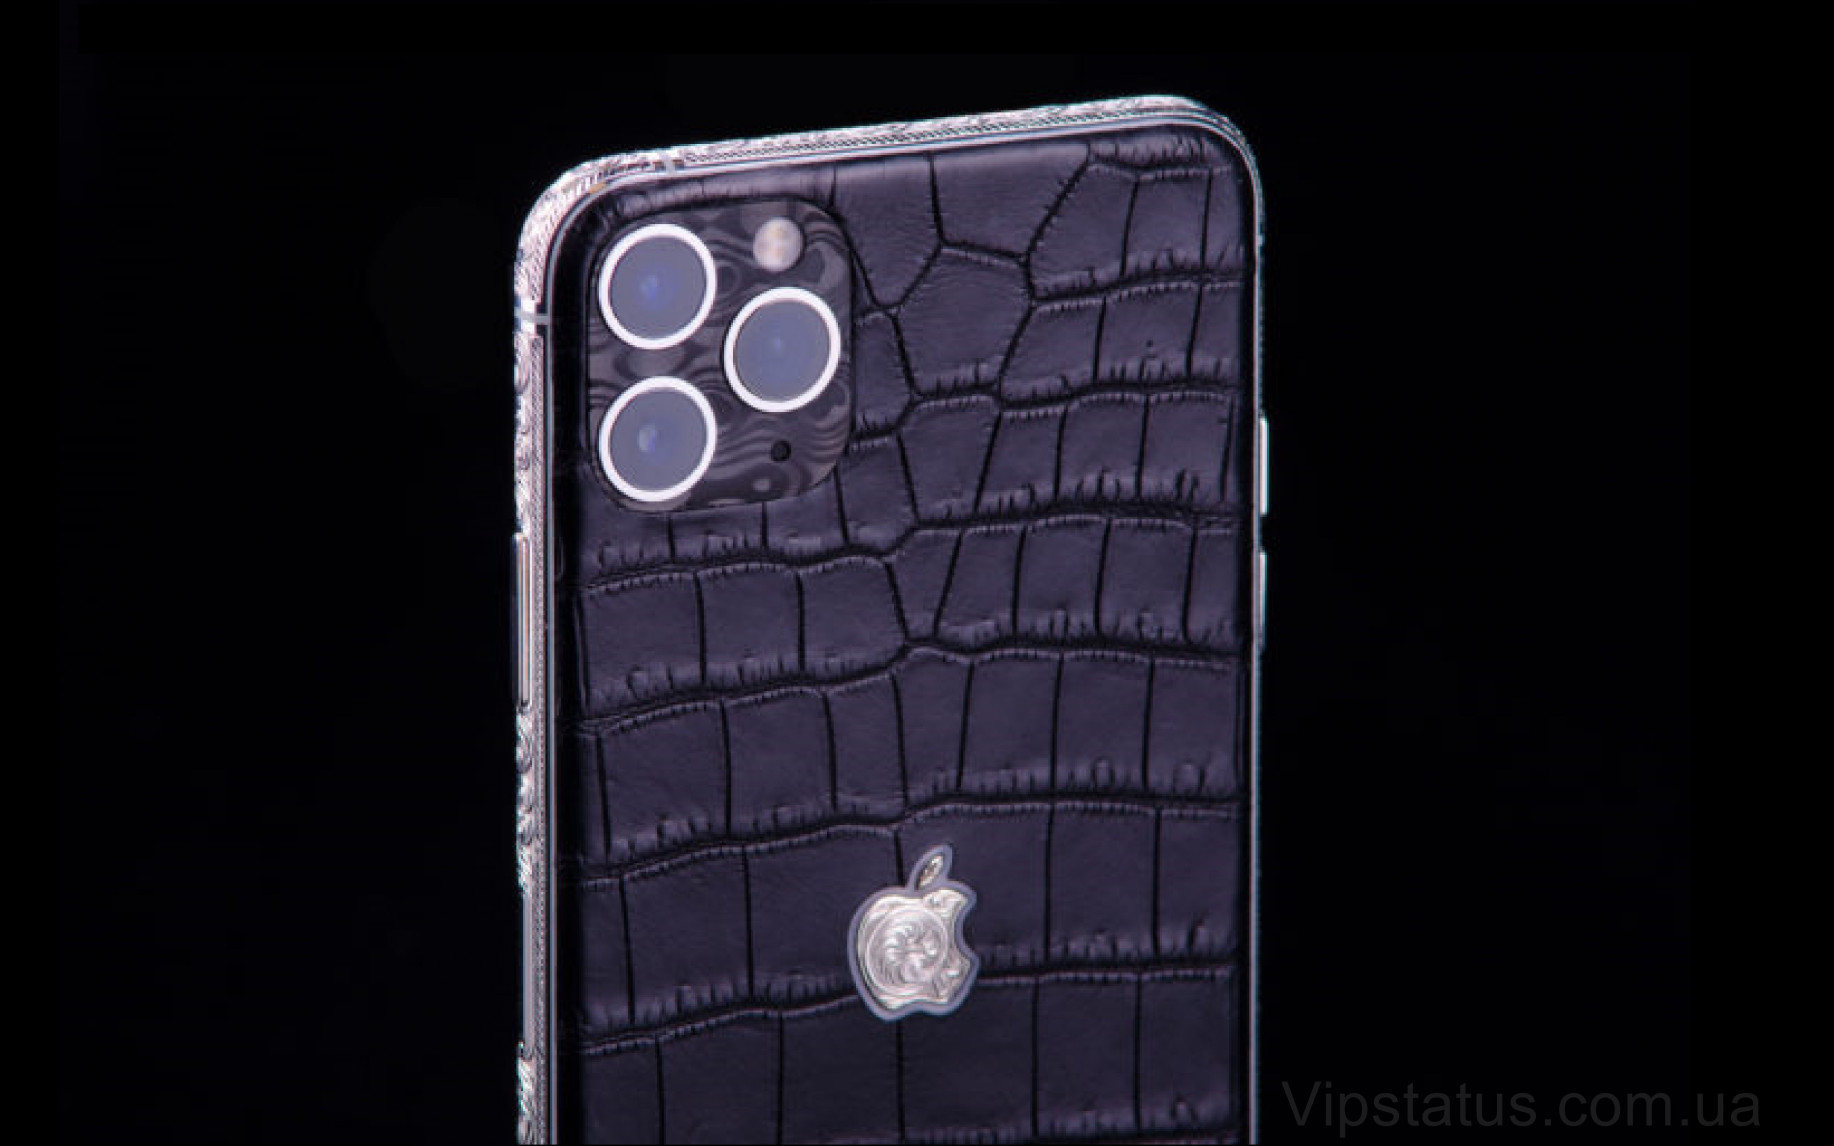 Elite Platinum Carbon Magic IPHONE XS 512 GB Platinum Carbon Magic IPHONE XS 512 GB image 2